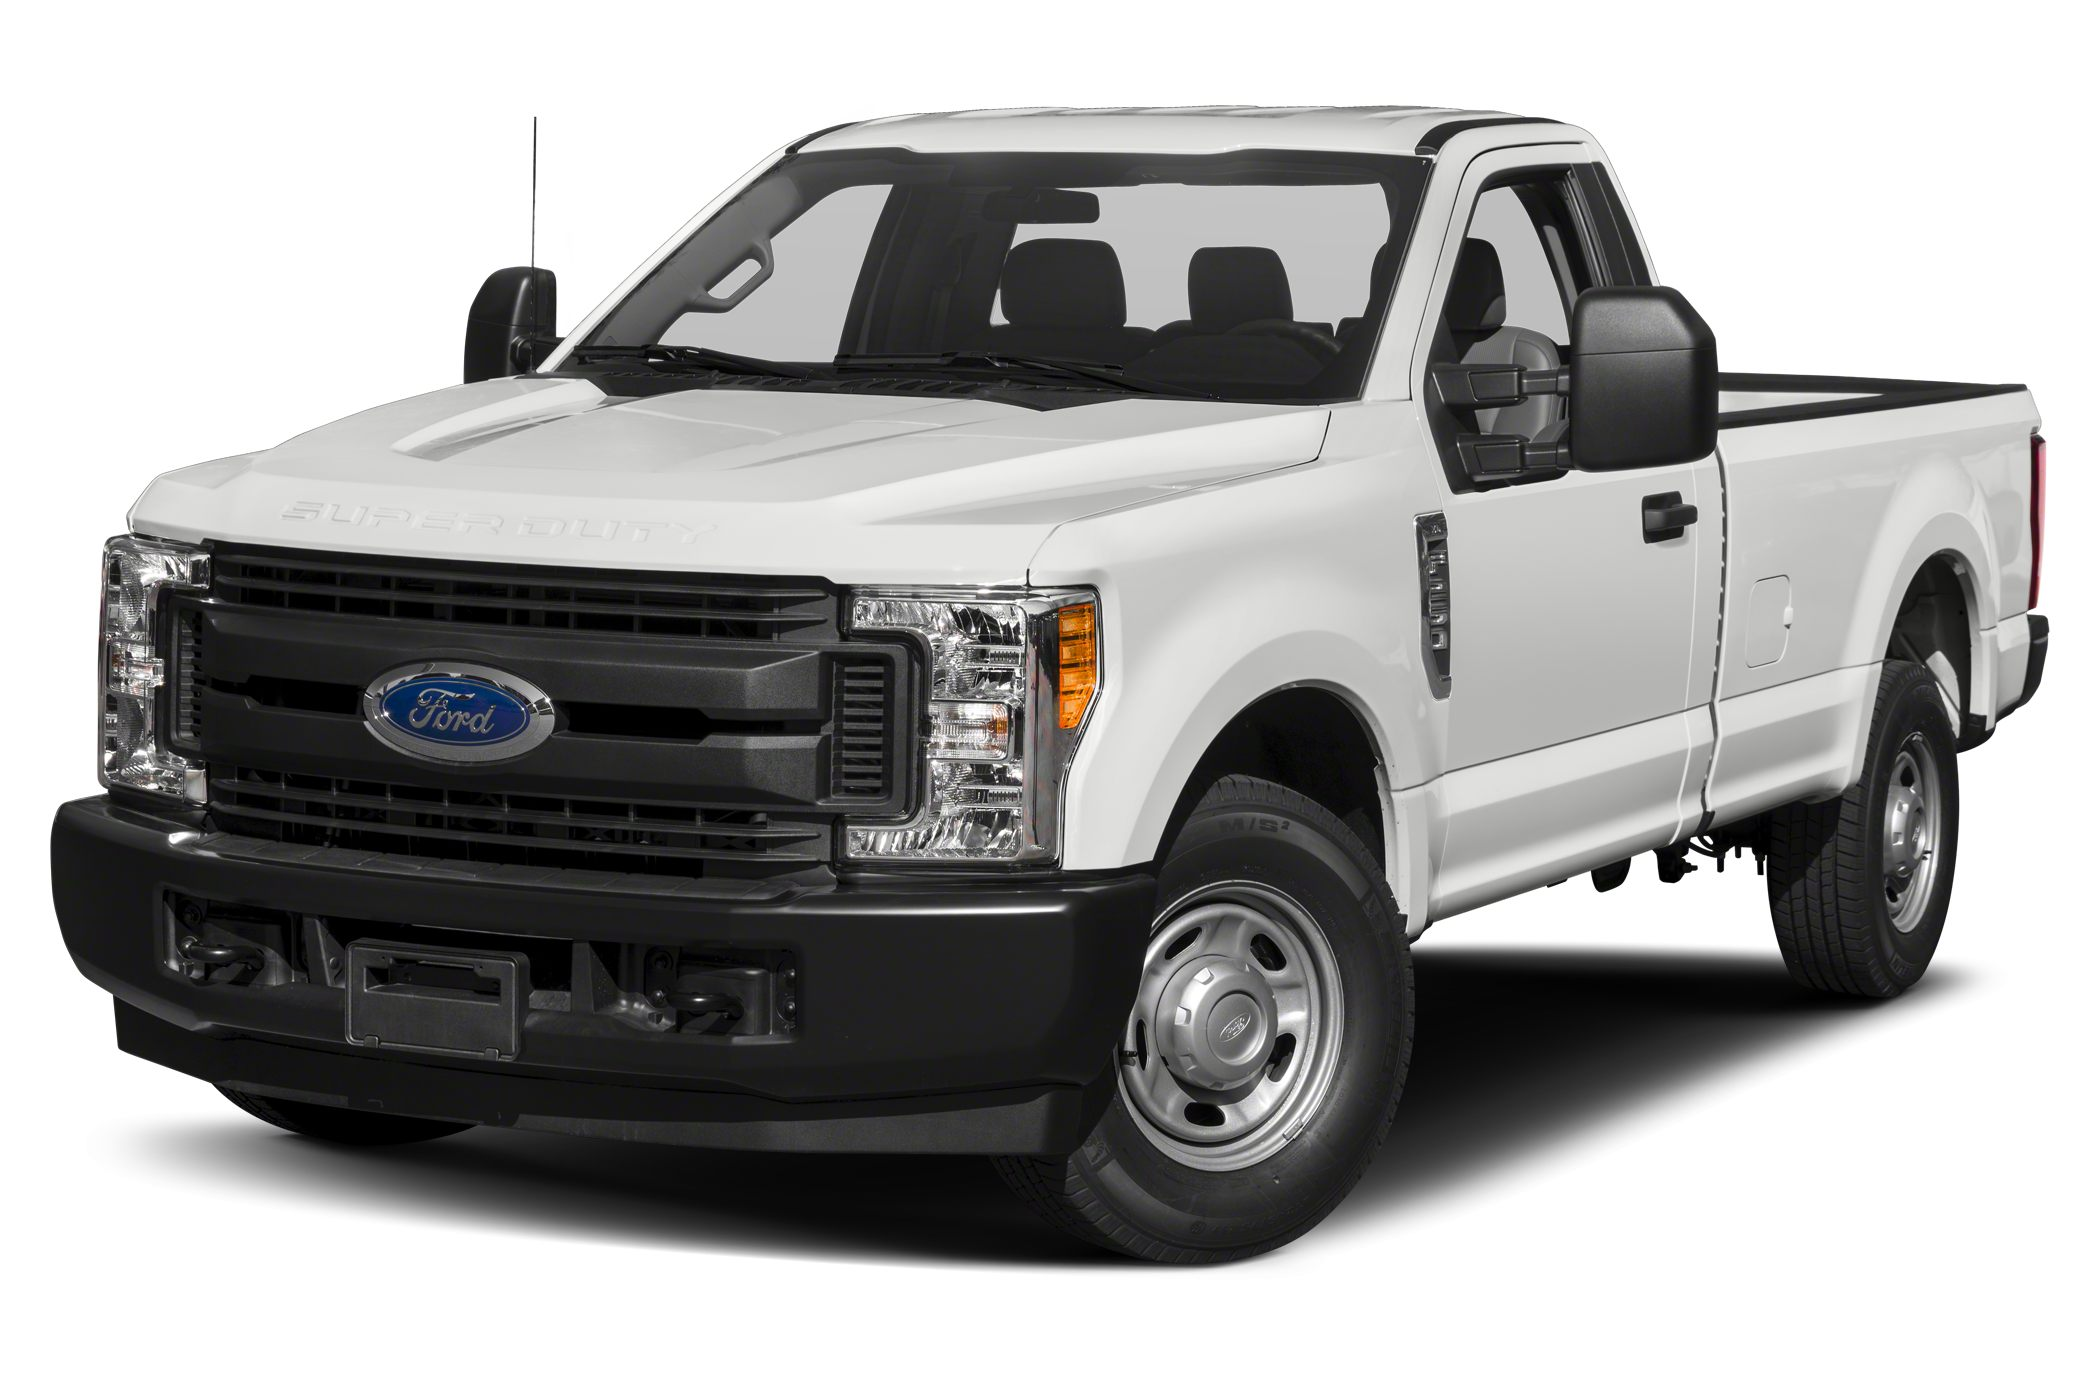 Ford f-250 photo - 10